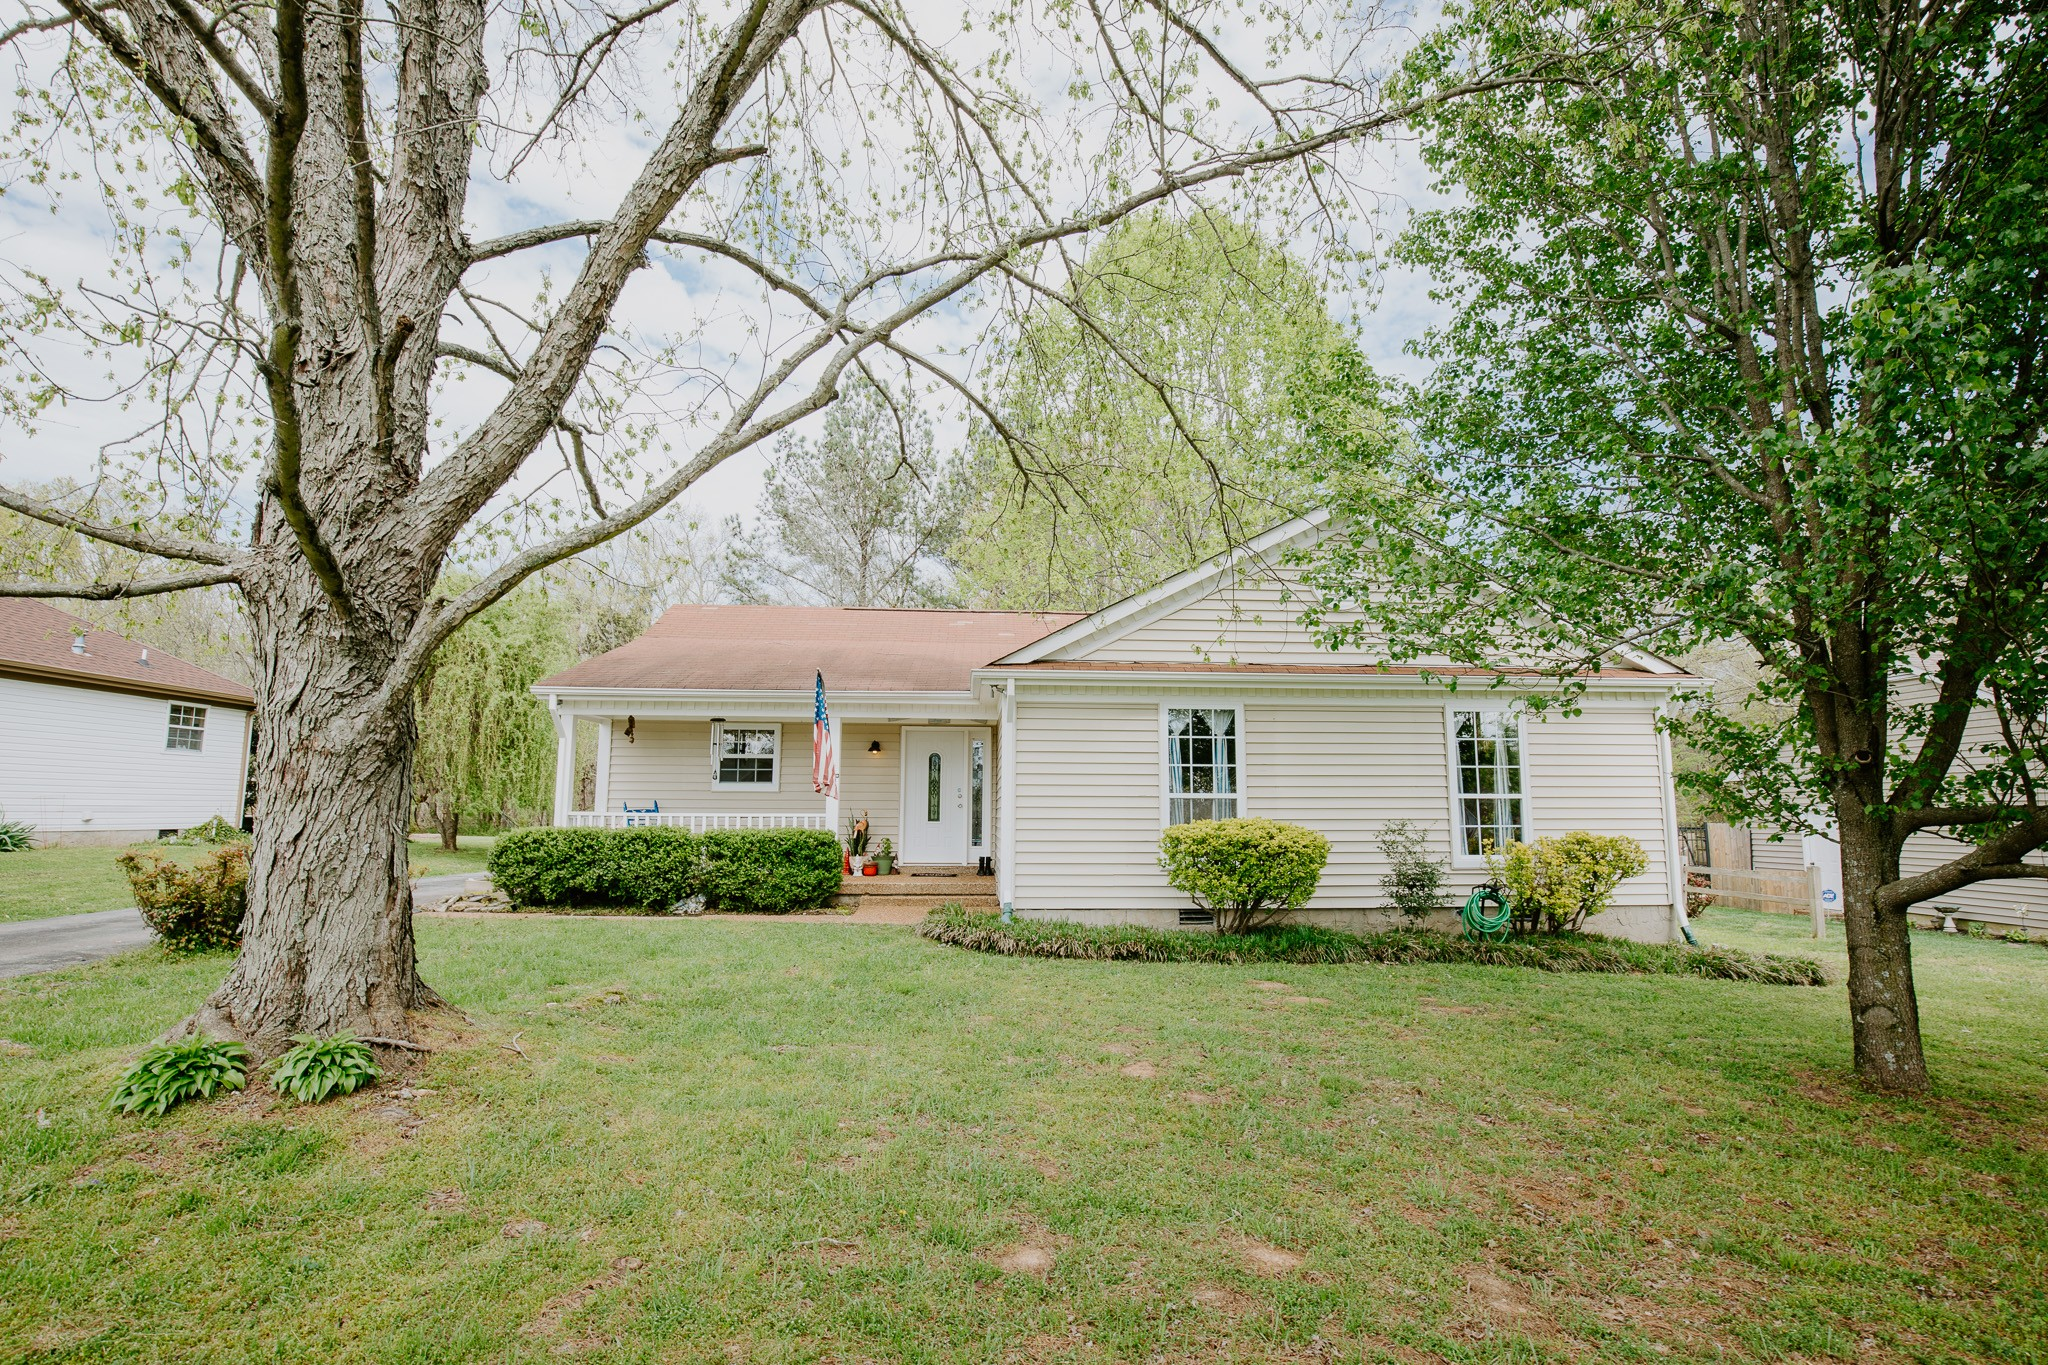 Very nice one story living with 3 bedrooms and 2 full baths, vaulted ceiling in living room with wood burning fireplace, separate dining area, galley kitchen, refrigerator/washer/dryer to remain, very private back yard backing to woods, tons of parking in driveway. Home/sidewalks/dec professionally pressure washed.